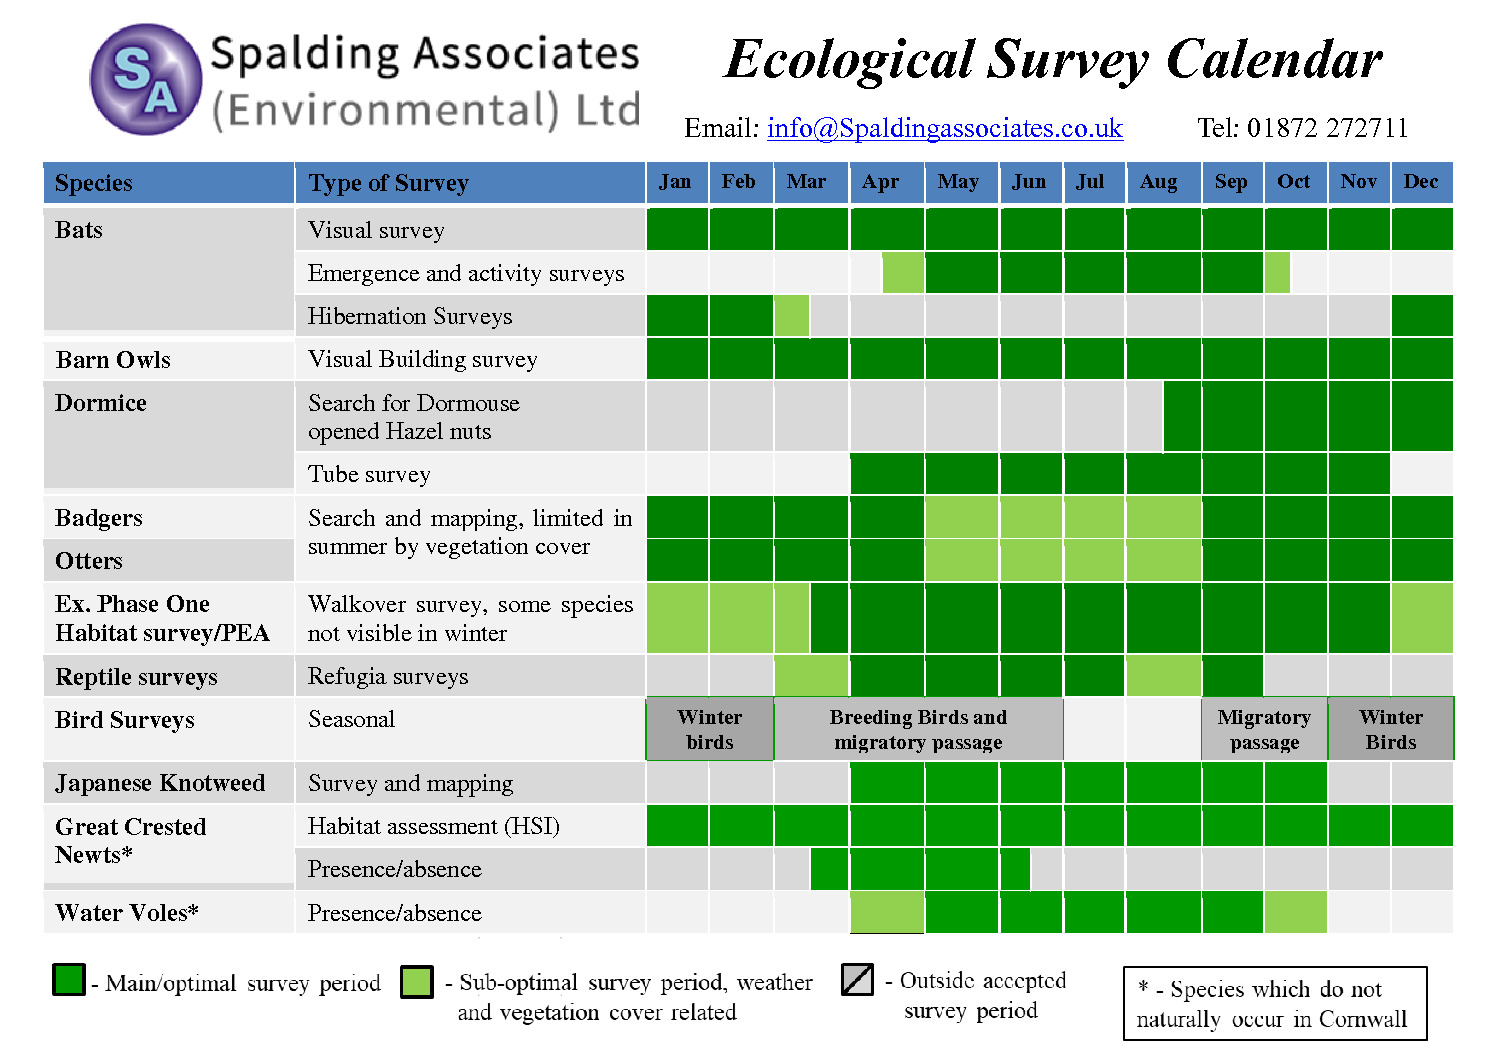 spalding associates ecological survey calendar